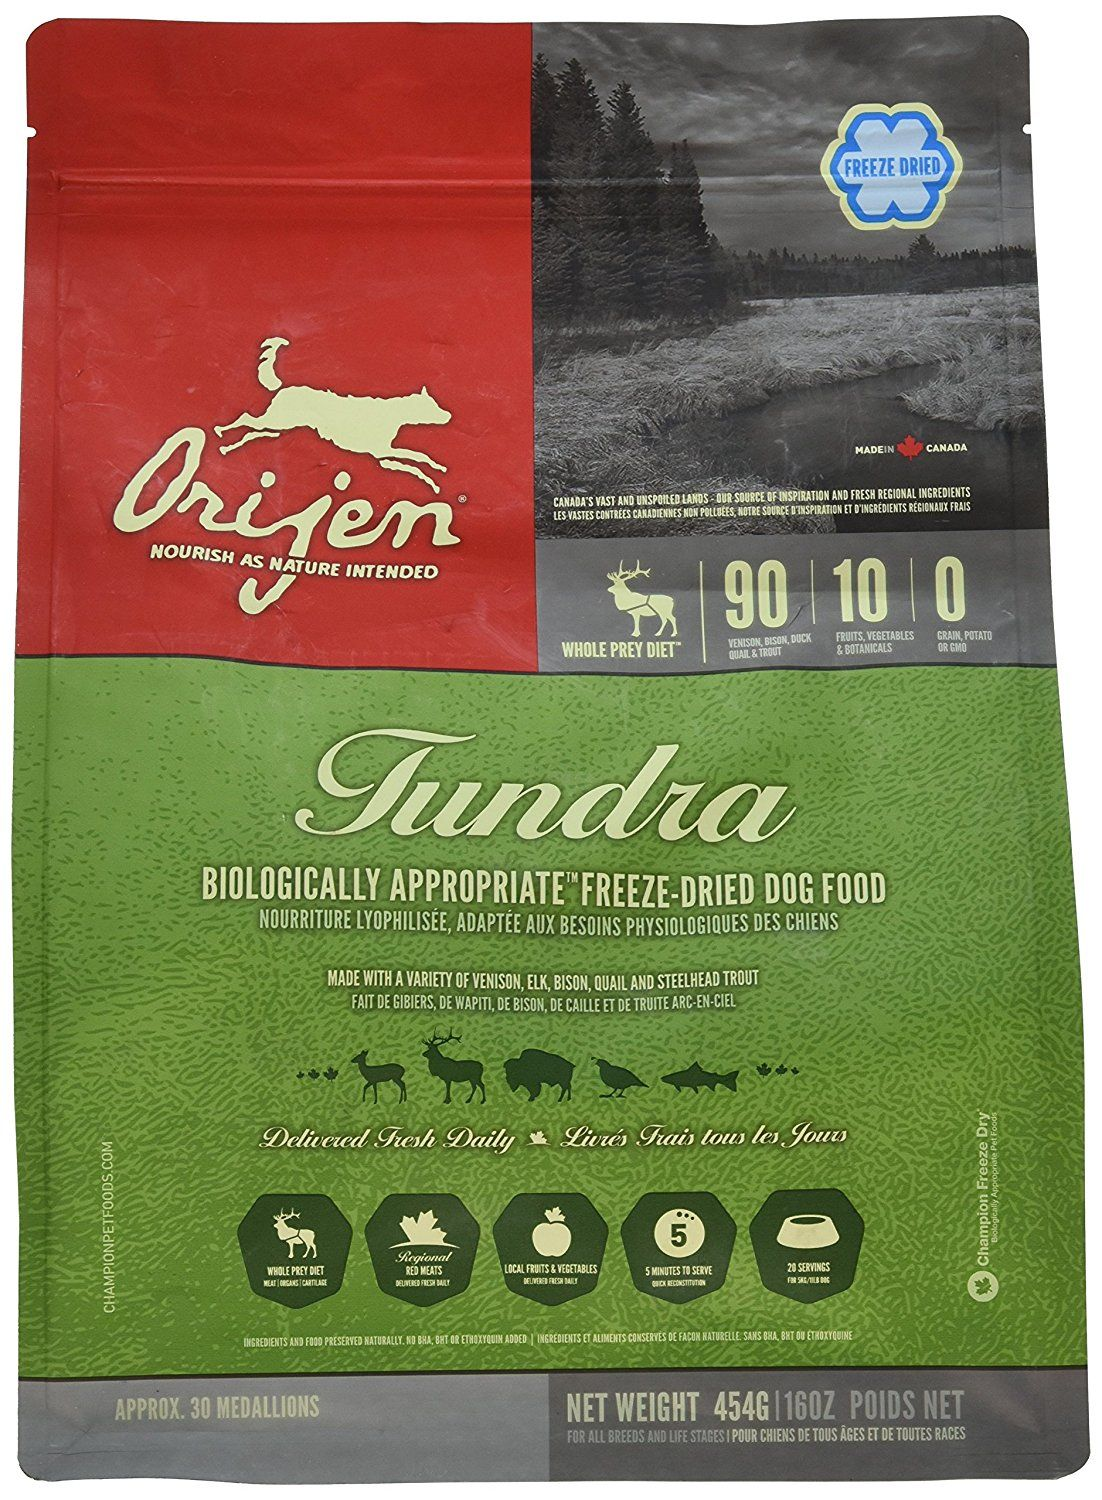 Orijen Freeze Dried Tundra Dog Food See This Great Image This